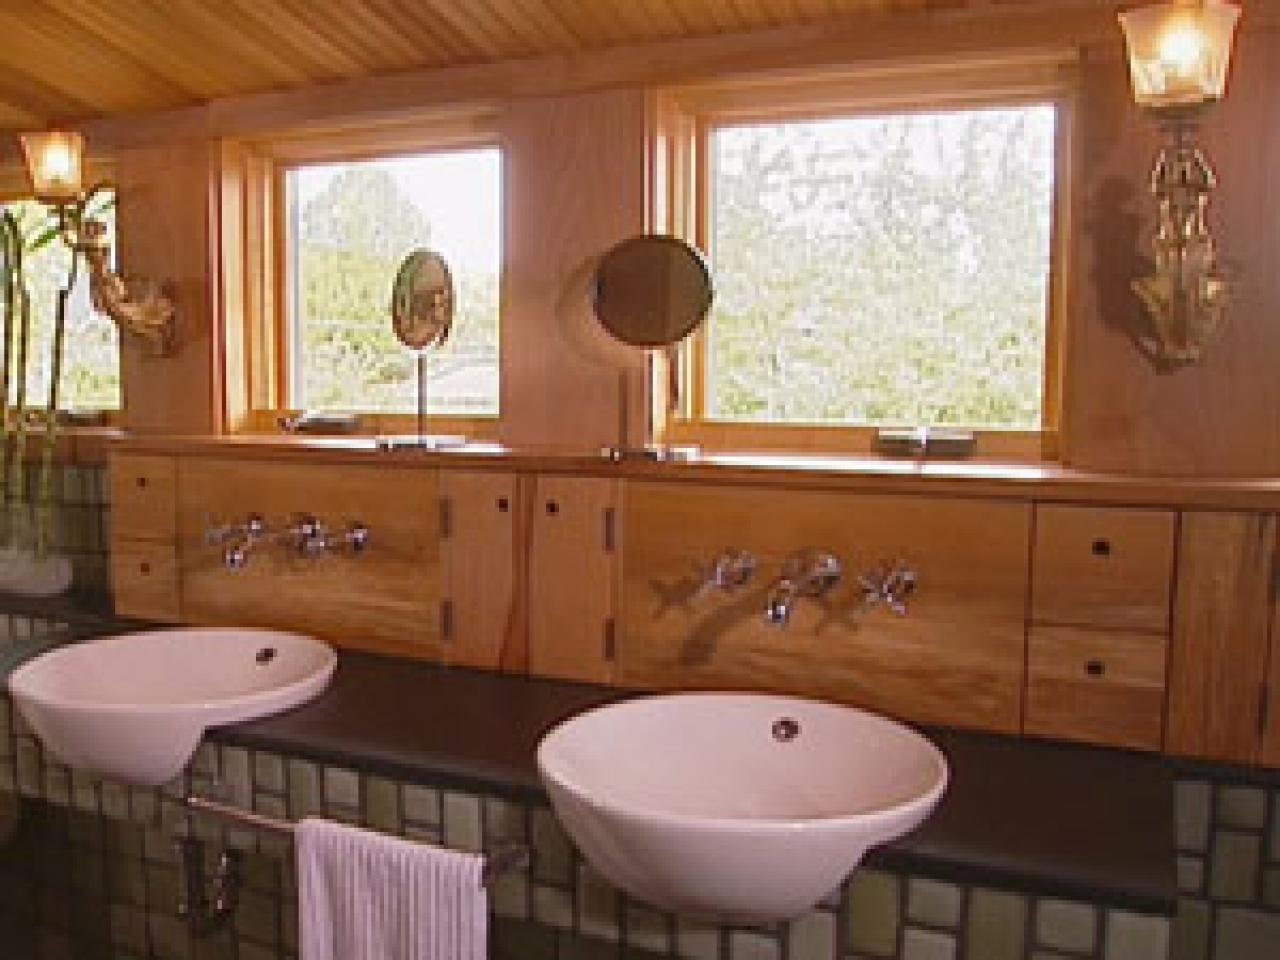 5 Simple Ways to Go Green in the Bath. Eco Friendly Bathroom  6 Ways to Go Green   HGTV